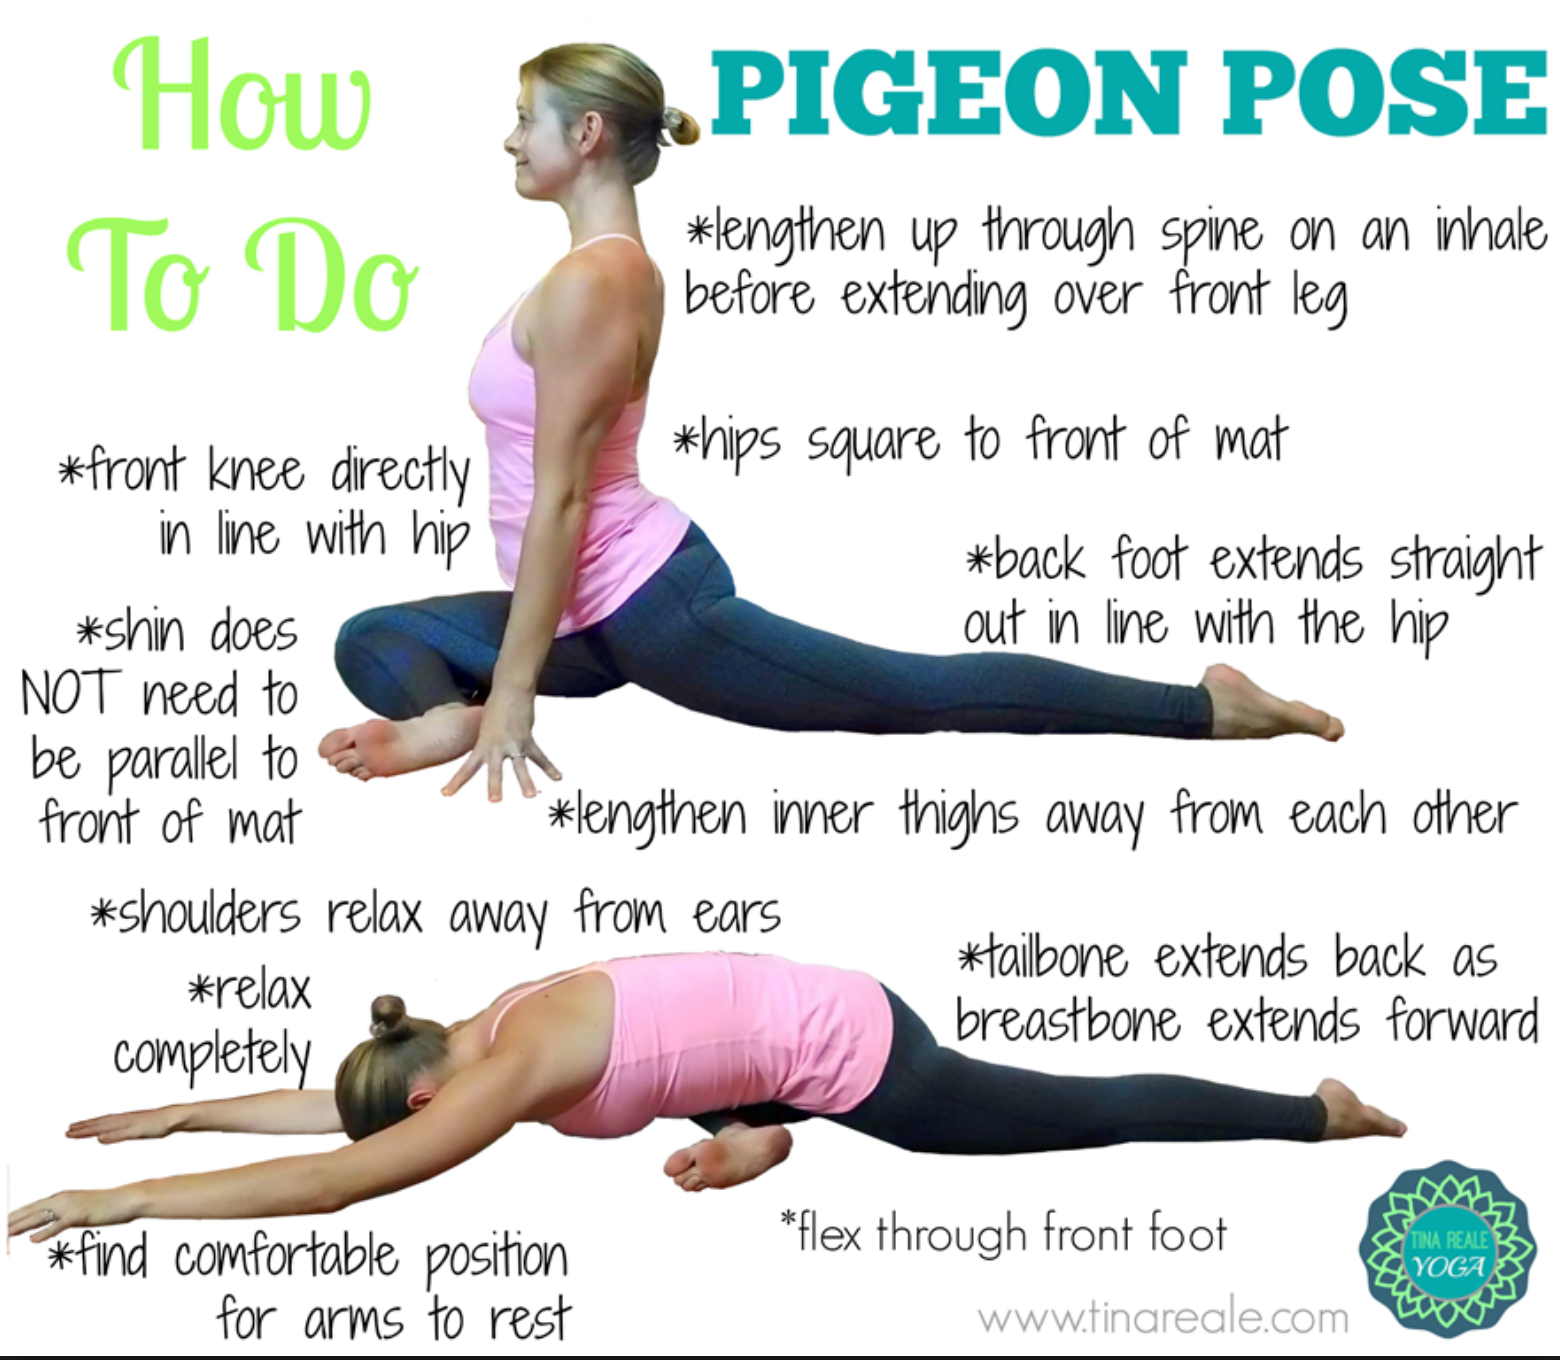 This is the best image explaining how to do this. I found it here: http://www.tinareale.com/yoga-poses/